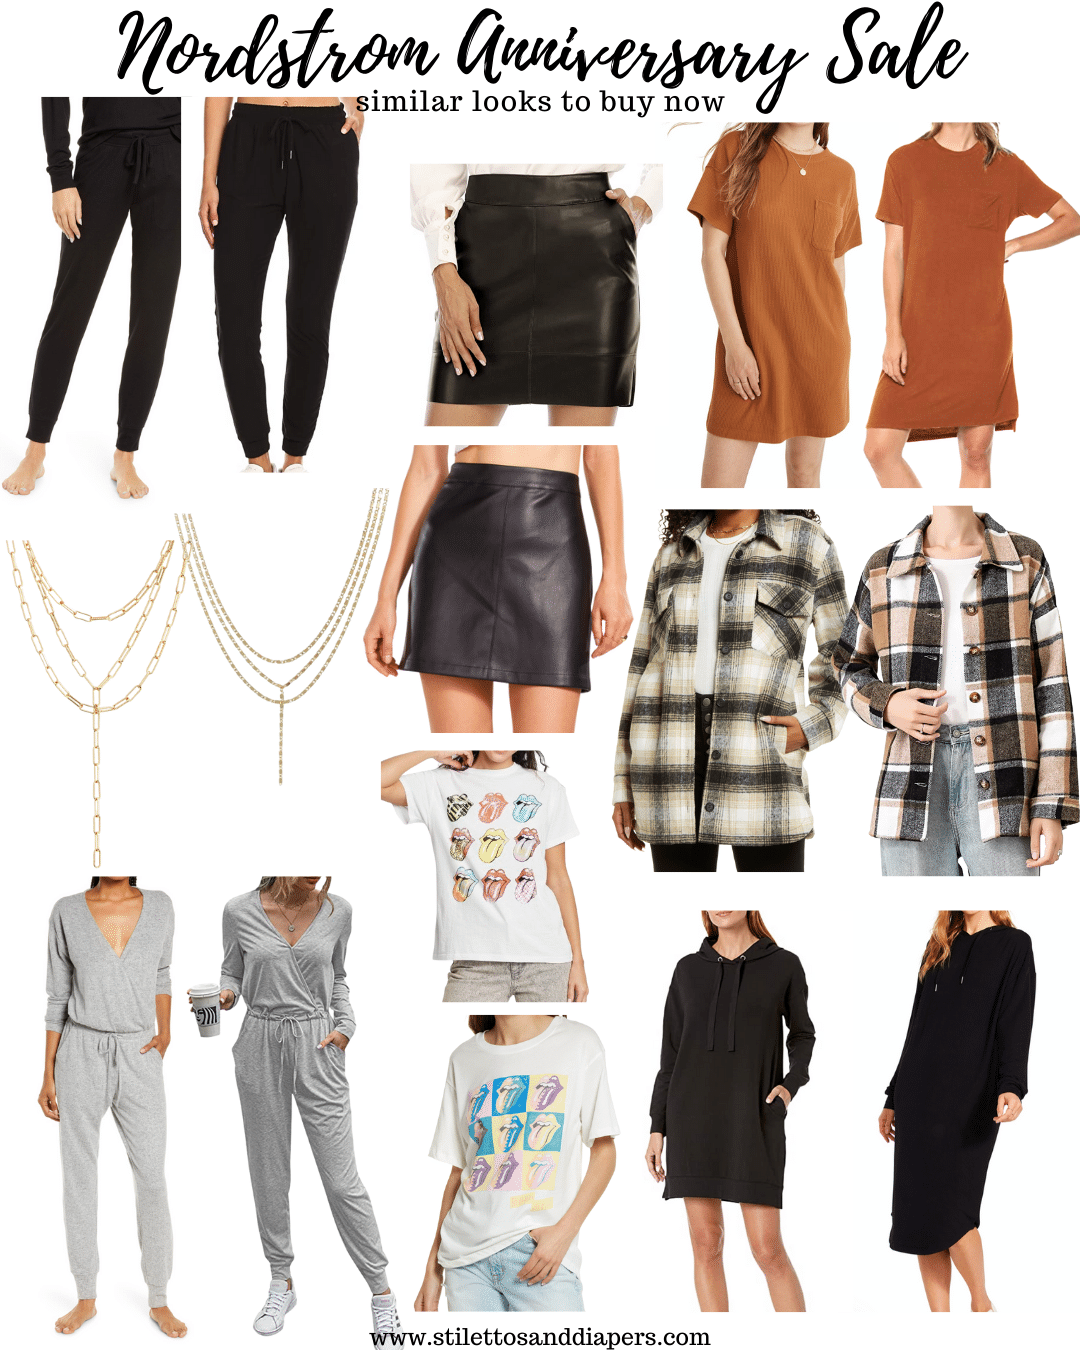 Nordstrom Anniversary Sale Similar Looks for less, Stilettos and Diapers